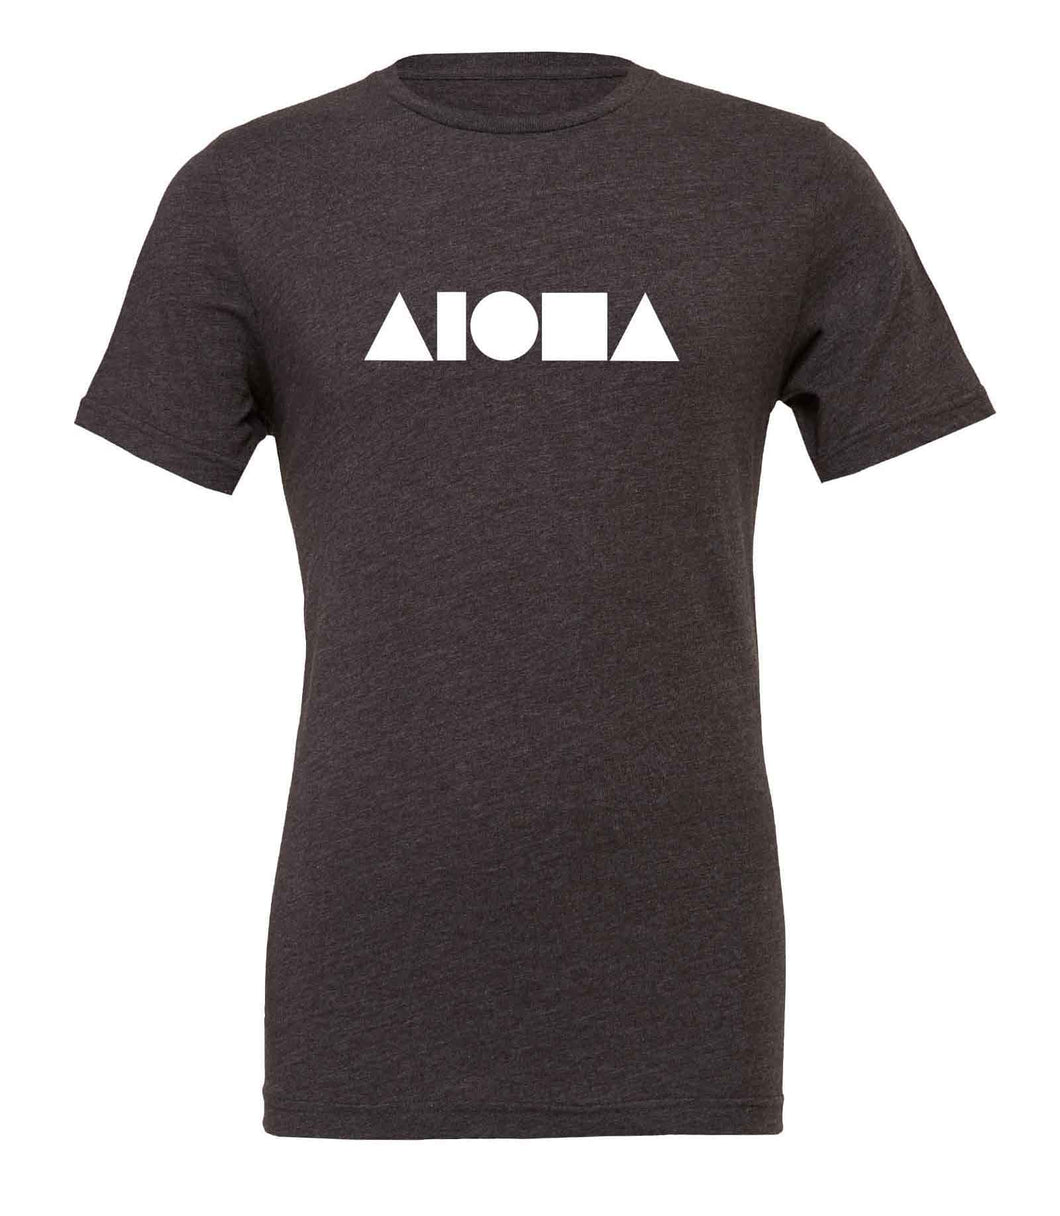 Aloha Shapes Heather Grey & White Unisex T-shirt